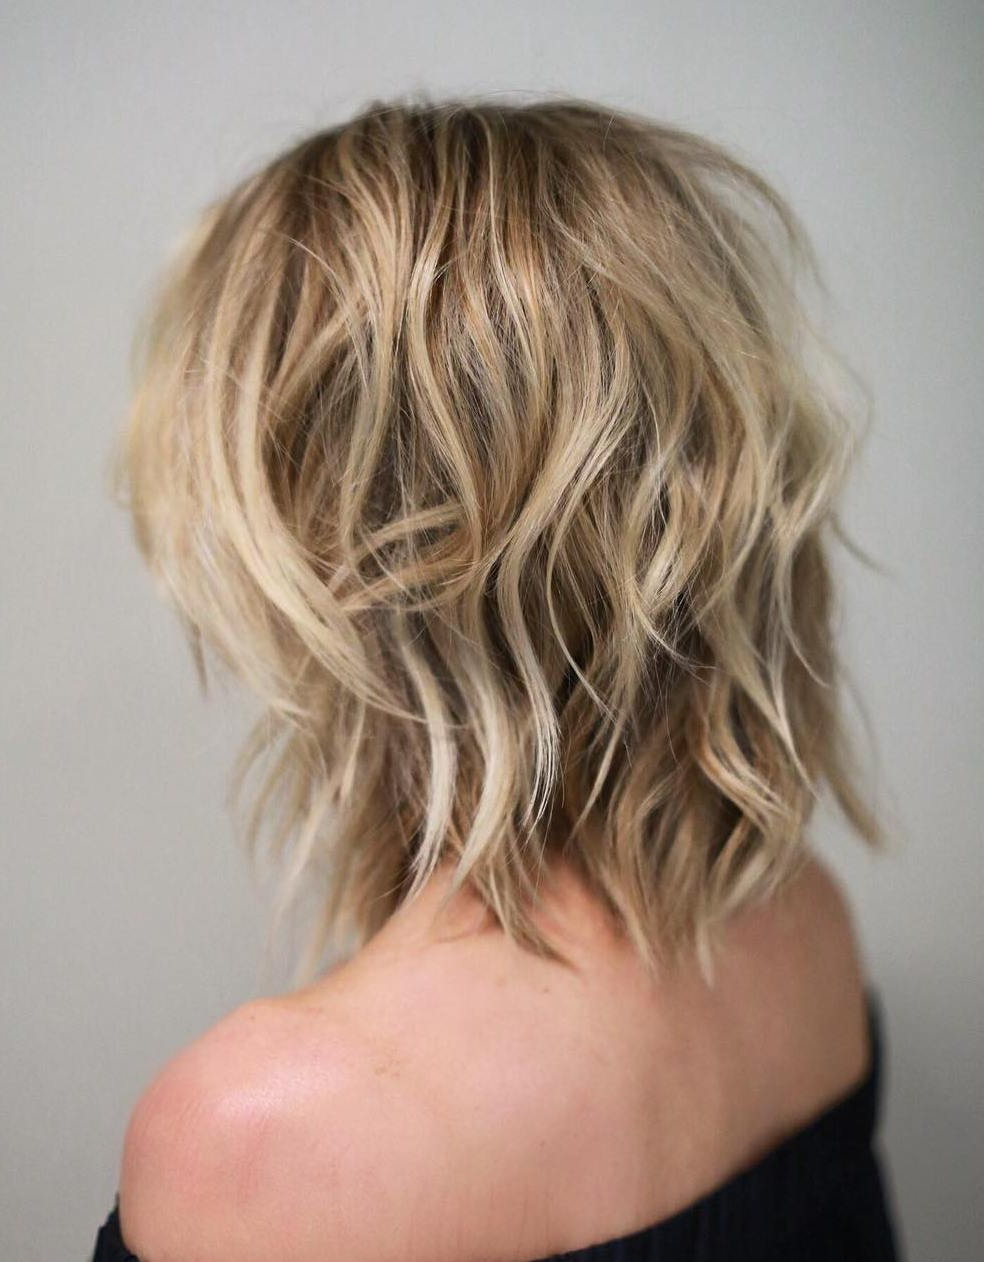 Shag Haircuts And Hairstyles In 2019 — Therighthairstyles Regarding Flawless Curls Shag Haircuts (View 17 of 20)